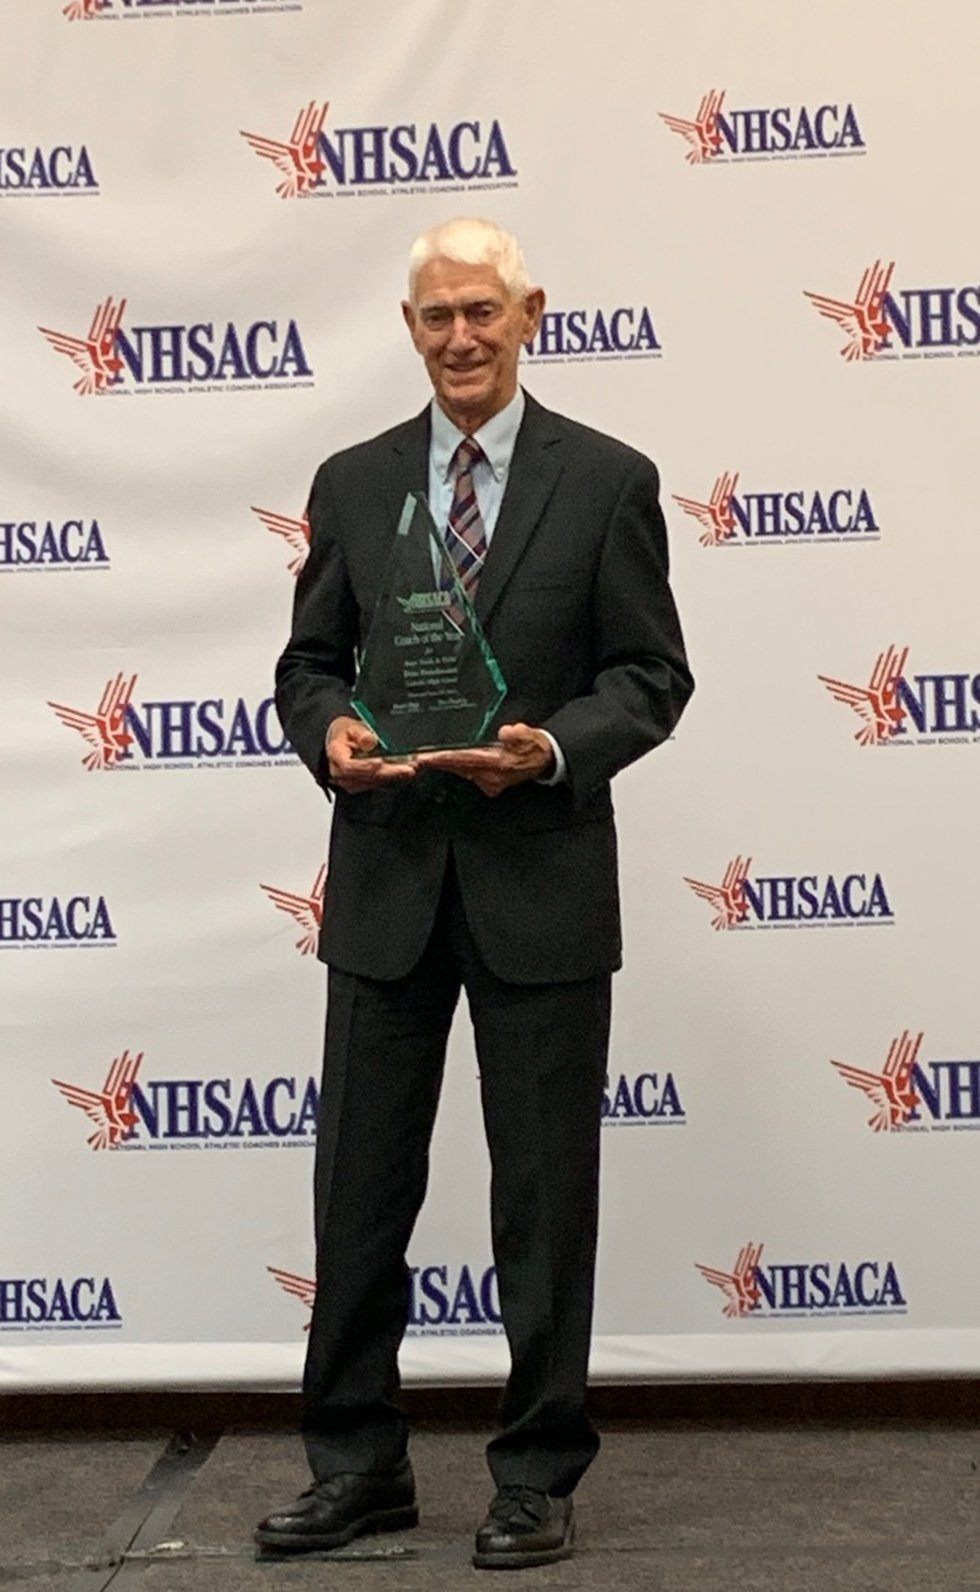 Pete Boudreaux 2019 National Track Coach of the Year.